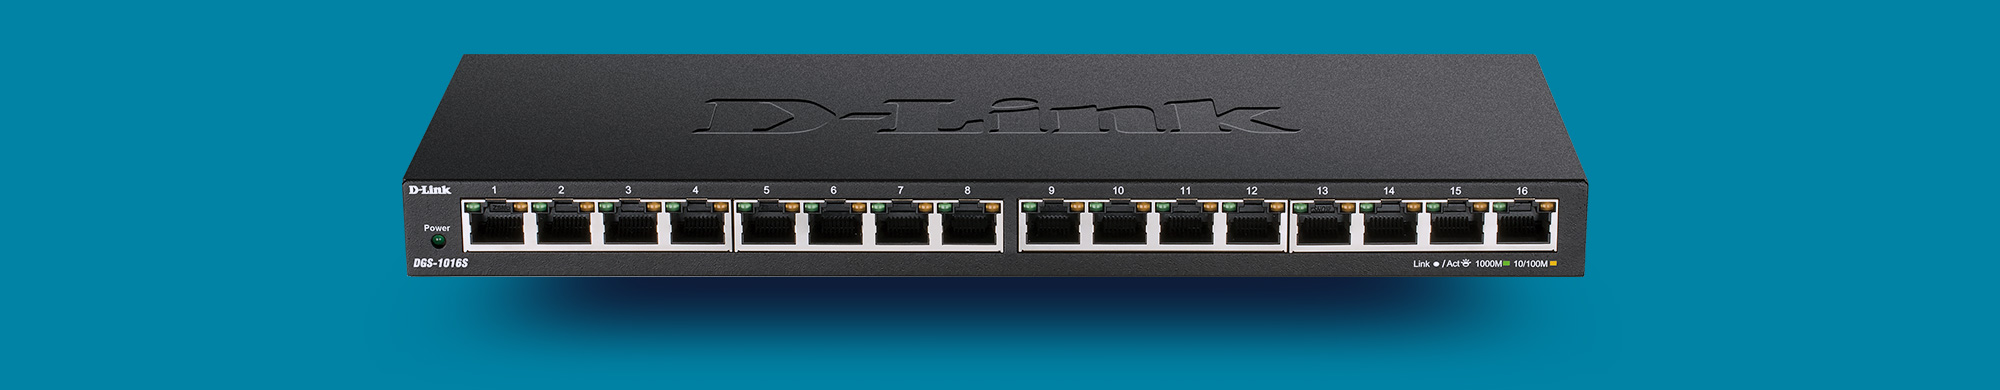 DGS-1016S 16-Port Gigabit Unmanaged Switch.